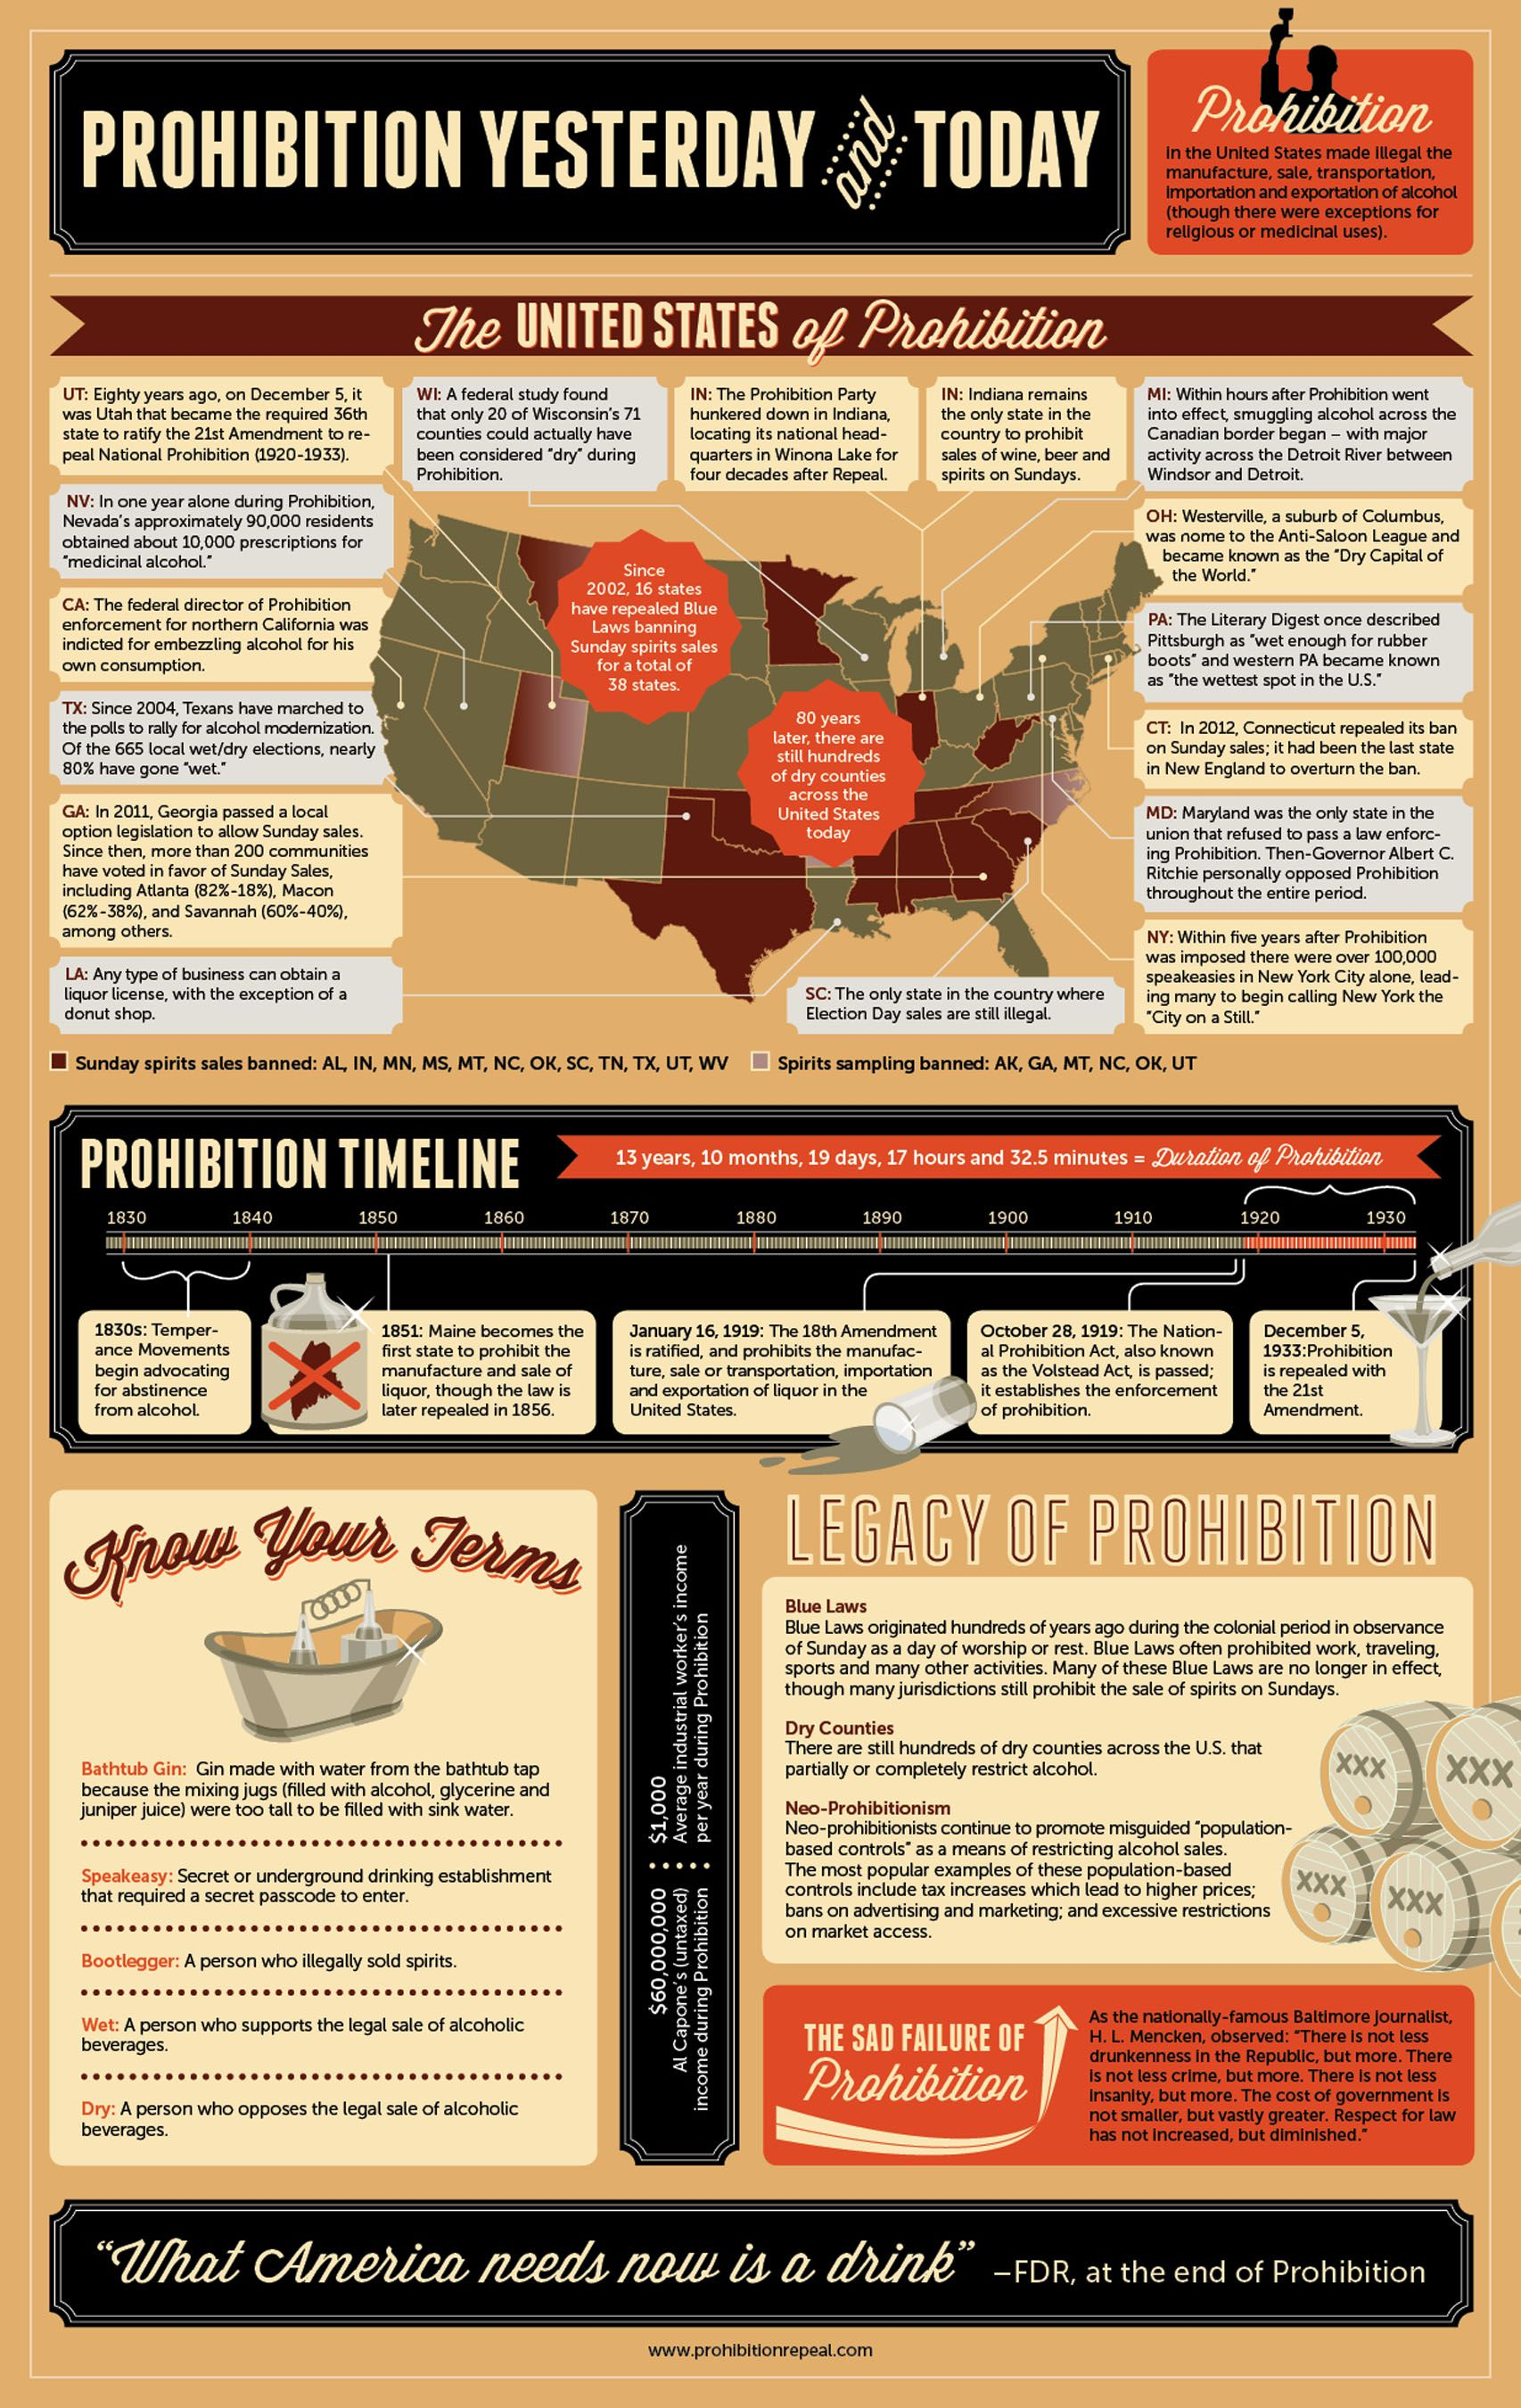 The United States Of Prohibition Timeline Infographic